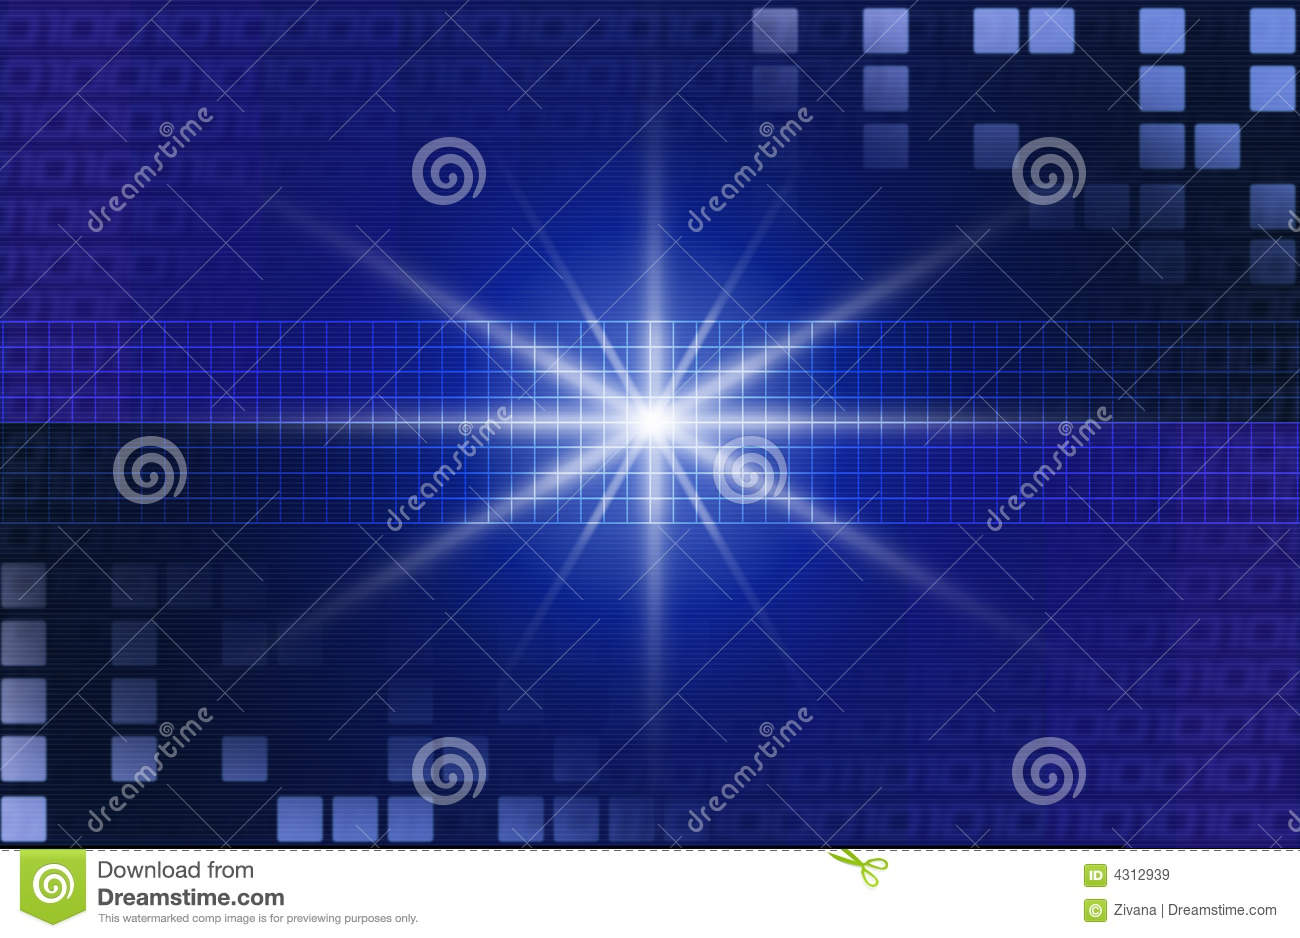 blue technology background pictures - photo #38